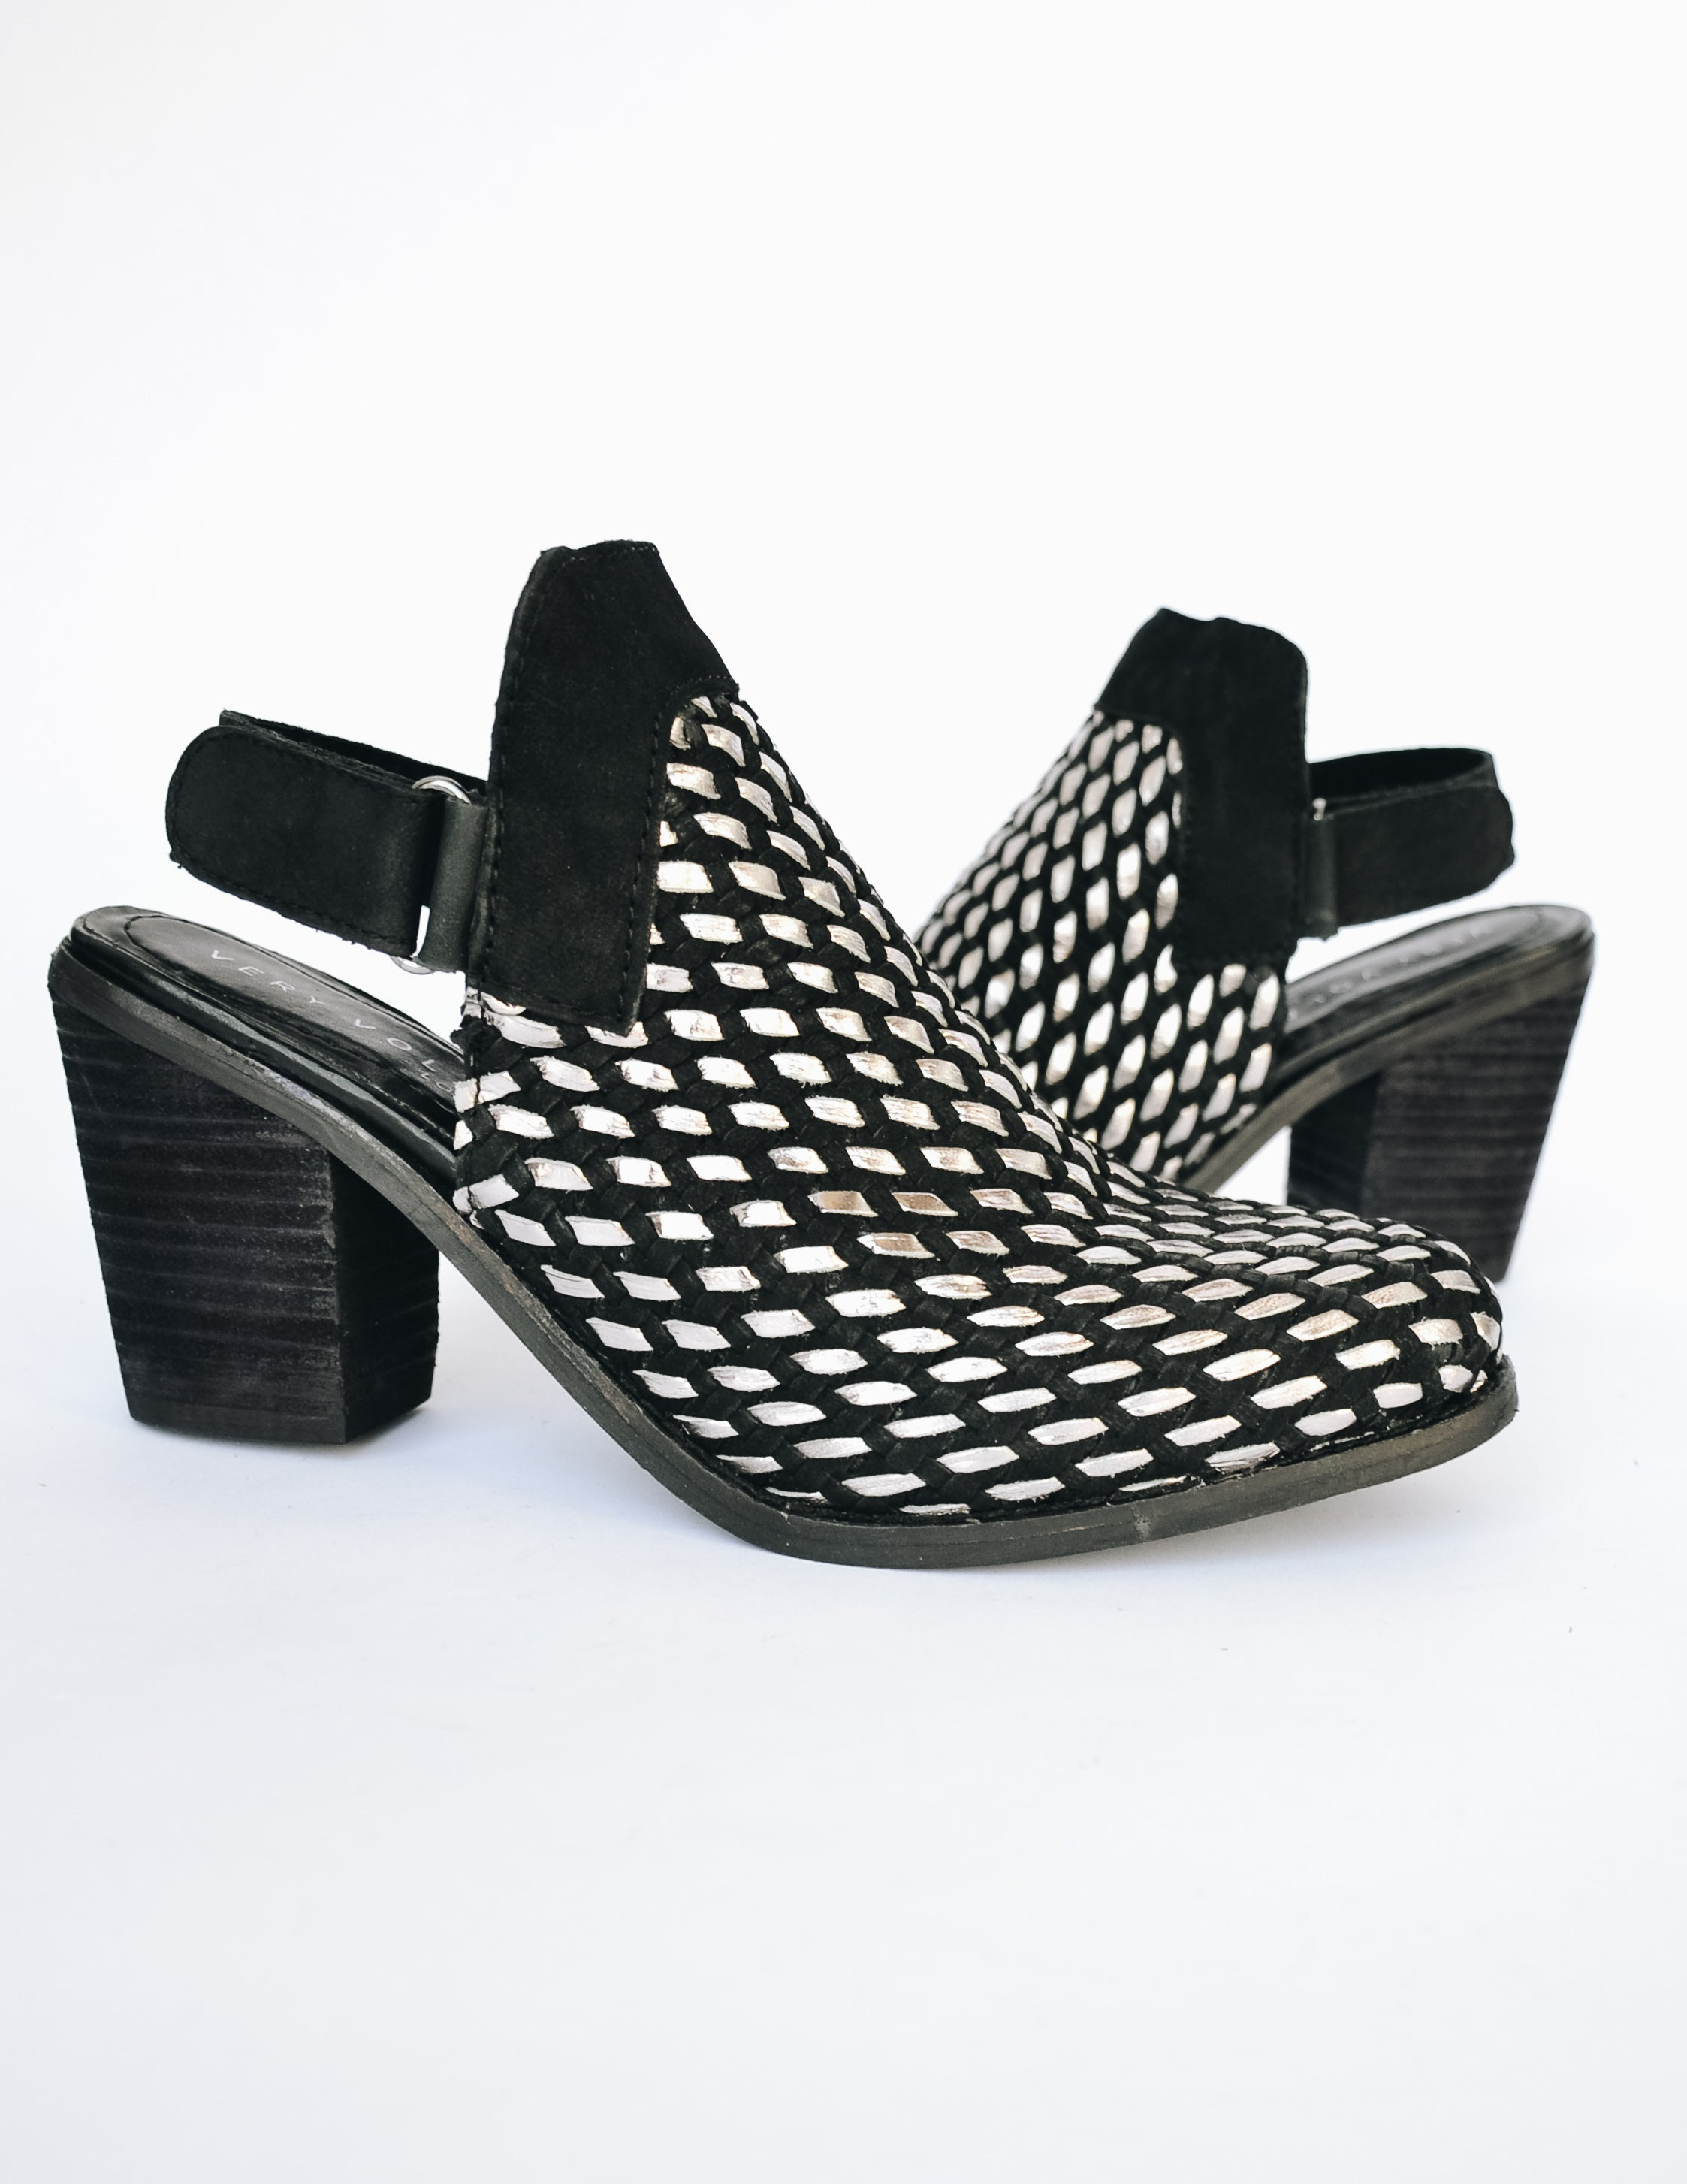 Black Sandara heel with black stacked wood heel and open back heel - Elle Bleu Shoe